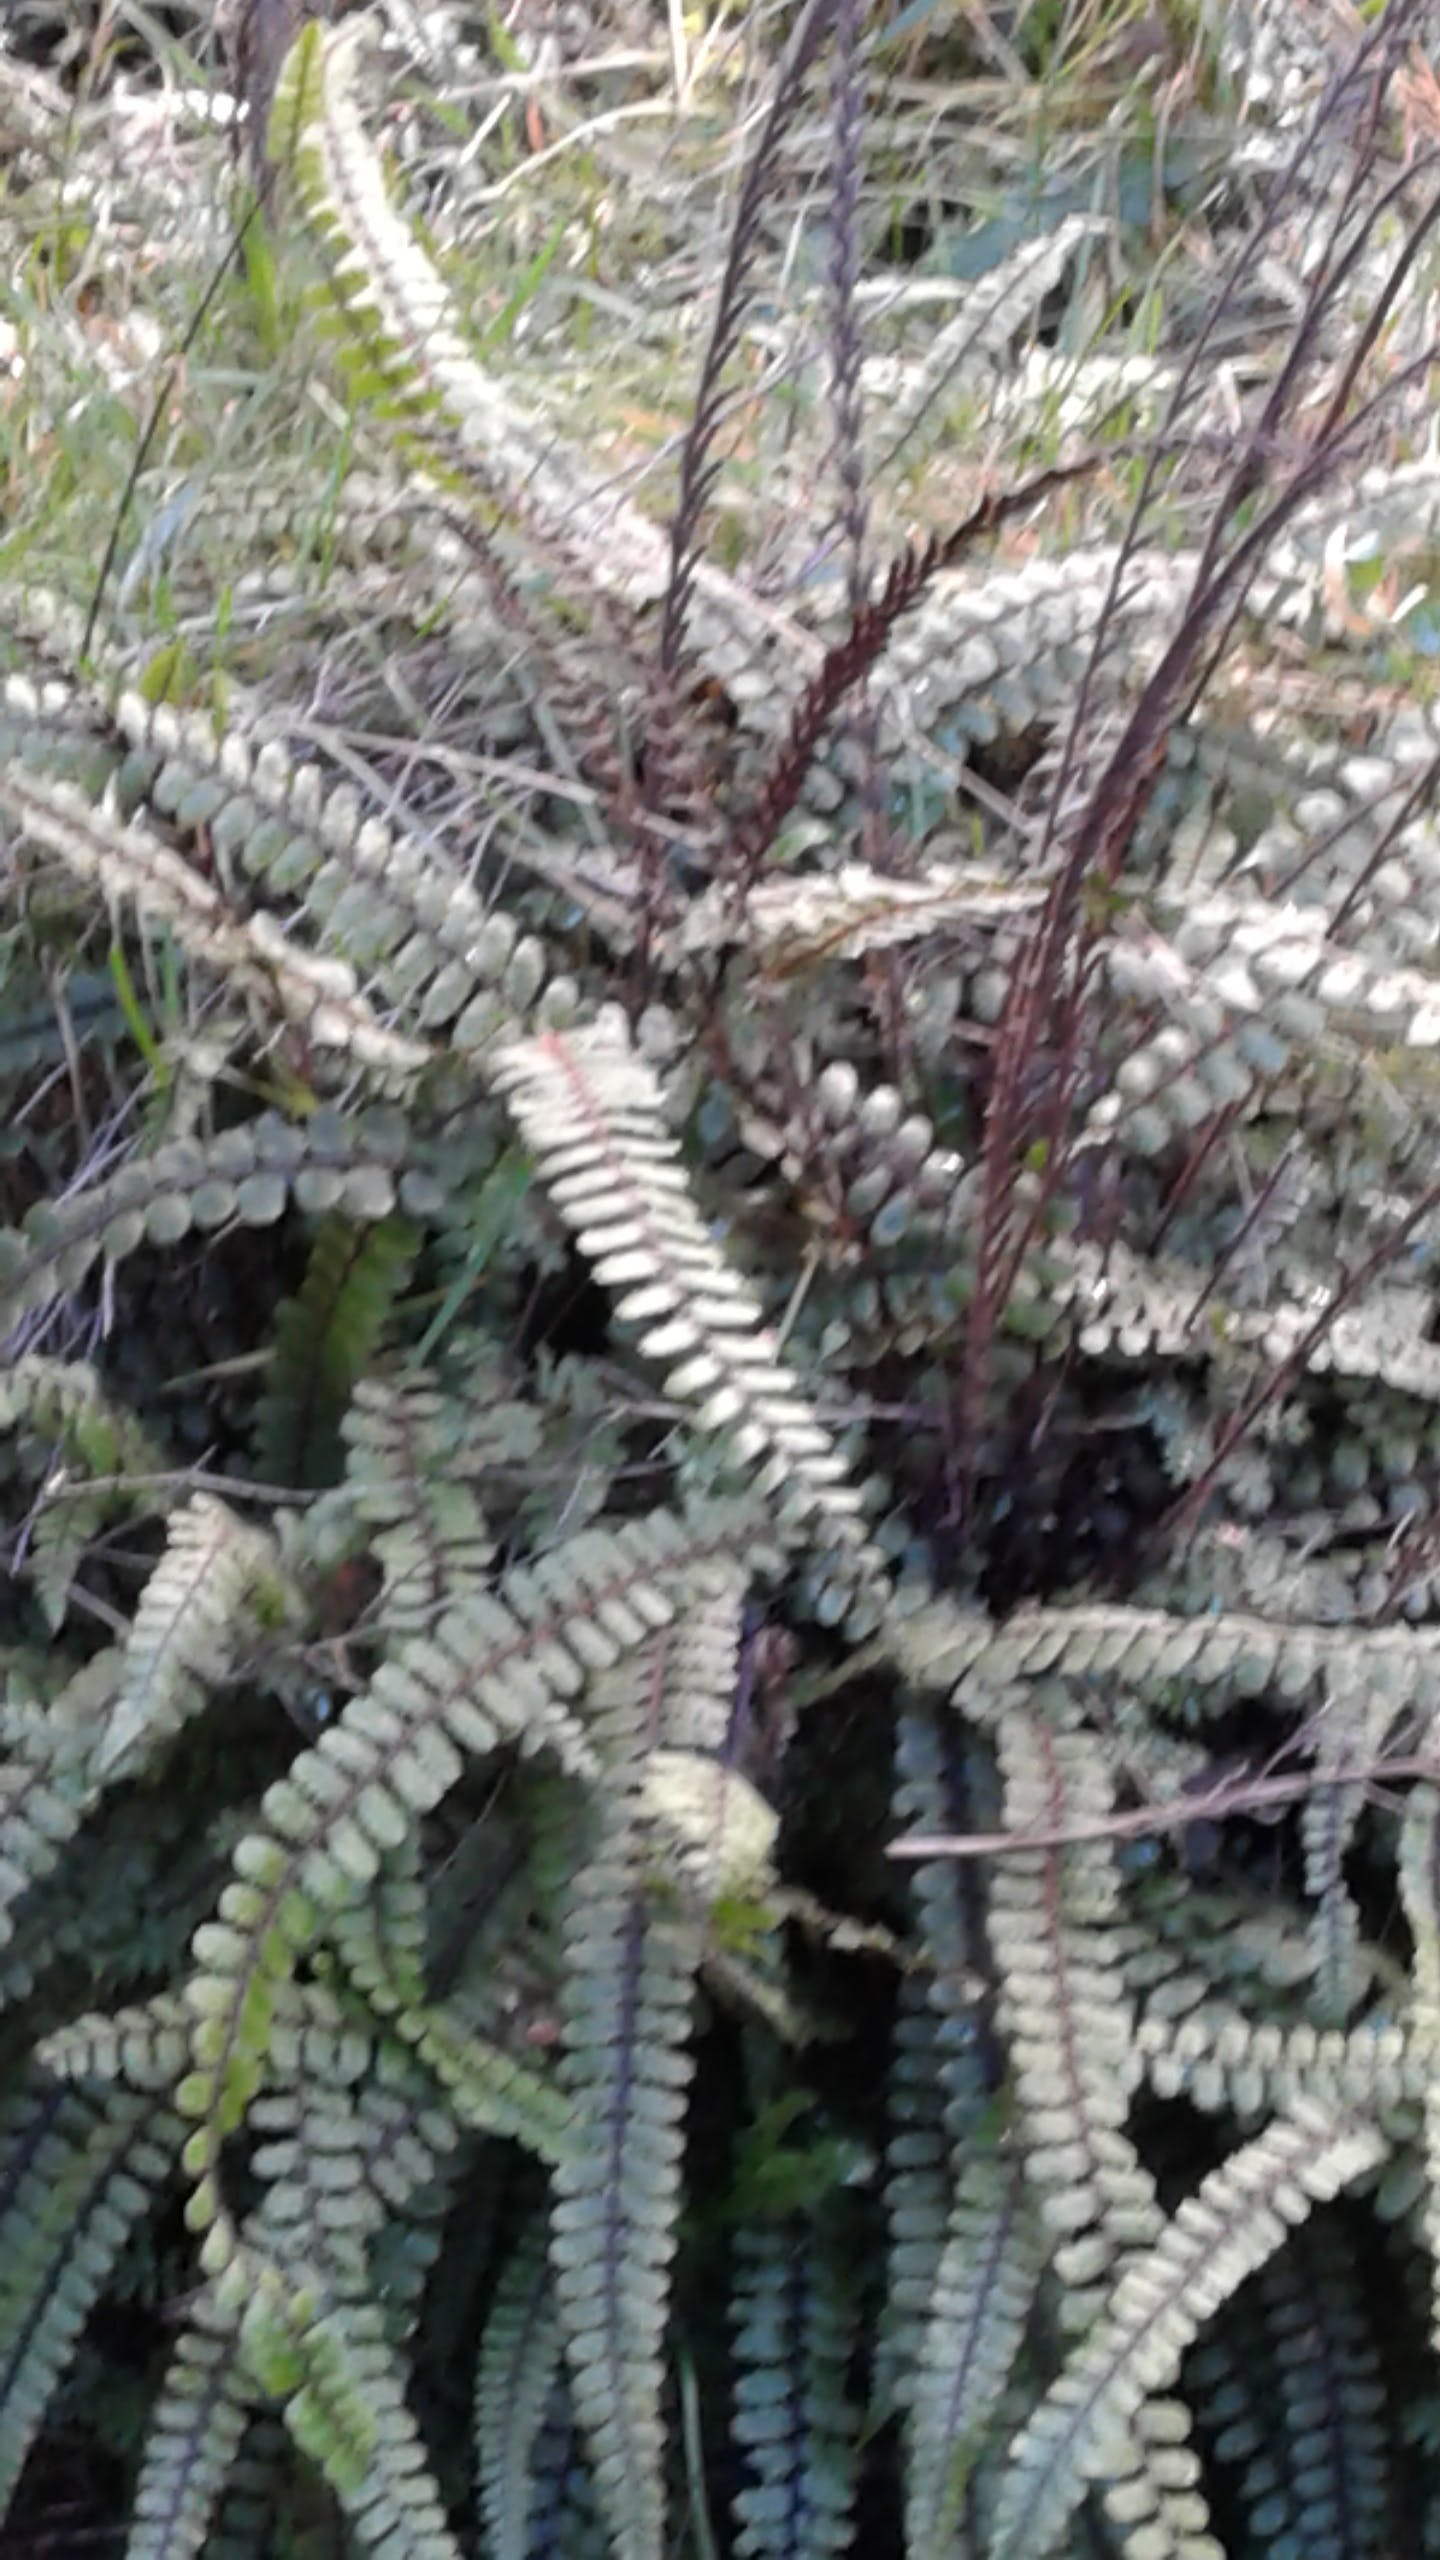 Native ferns on the forest floor.